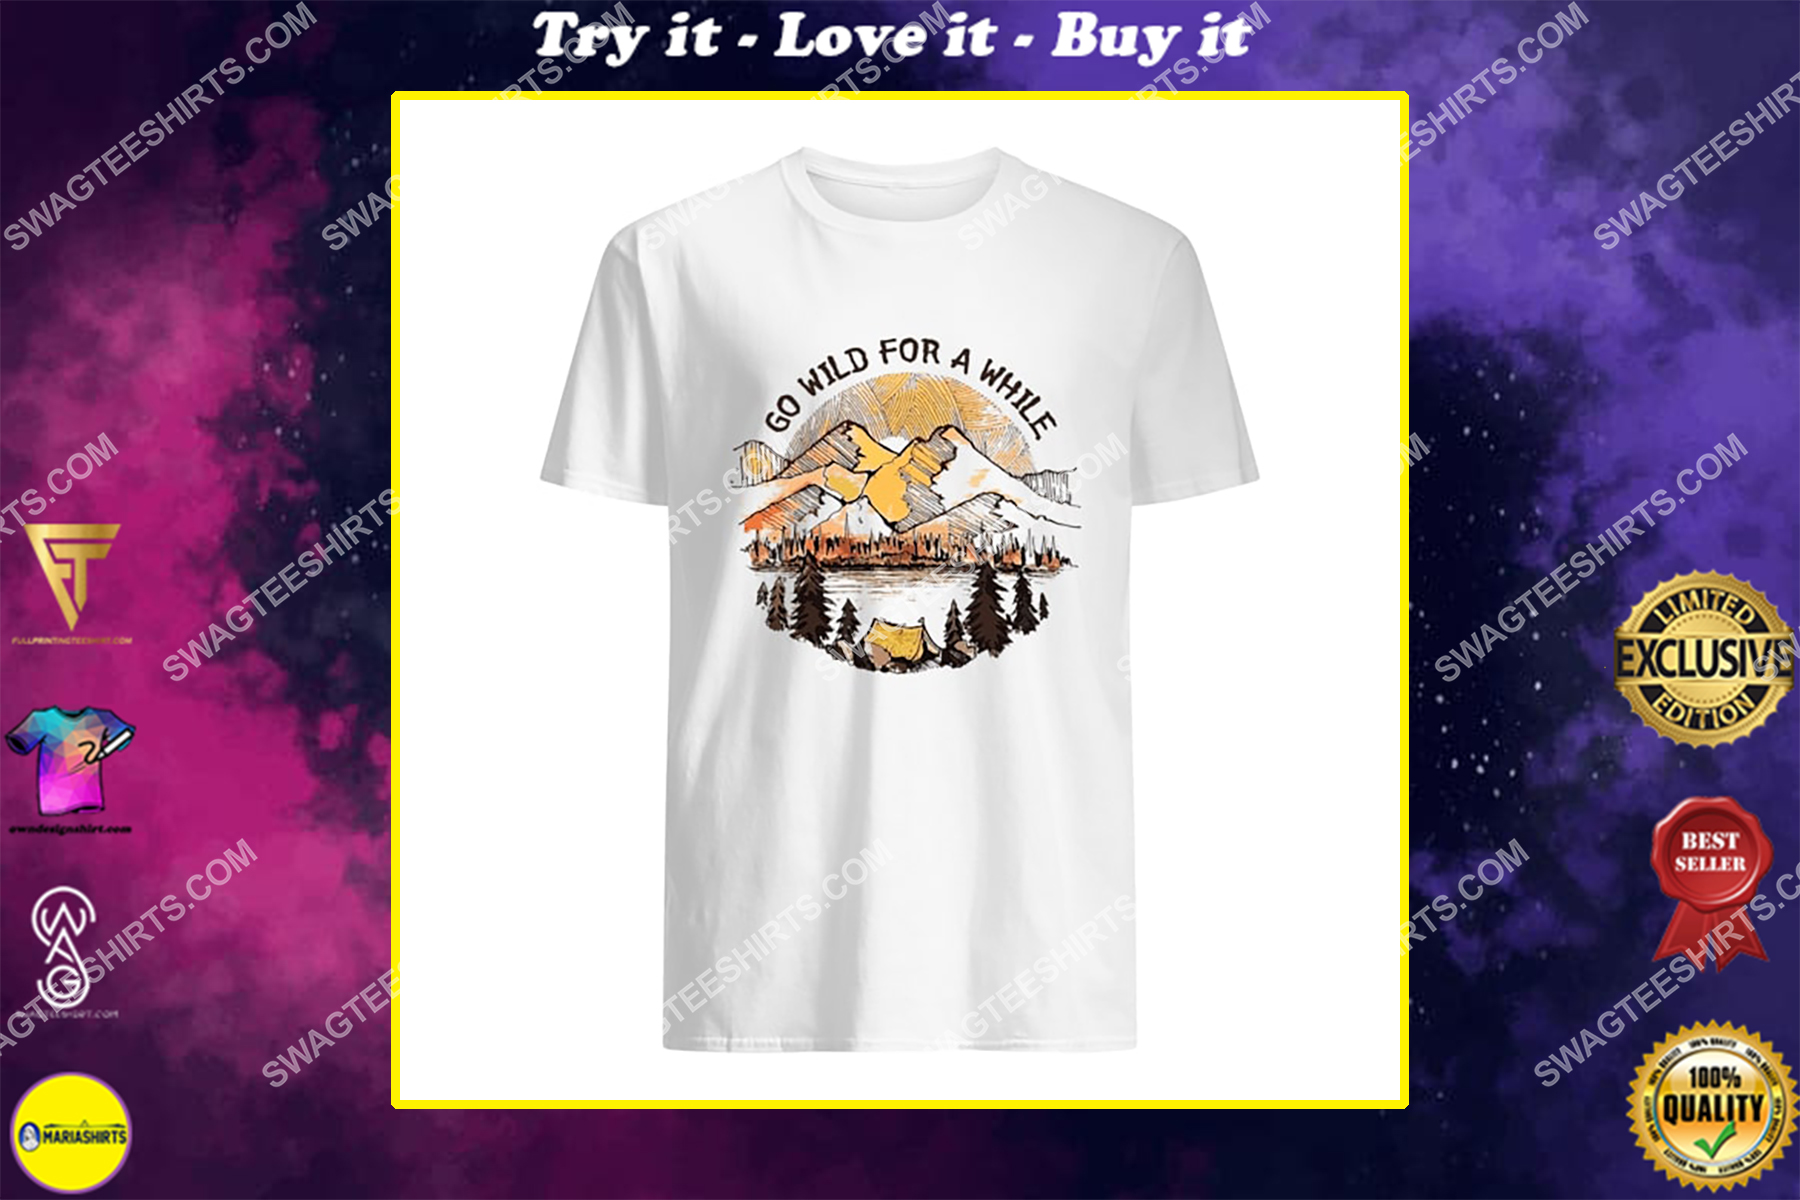 camping in the forest go wild for a while for camper shirt